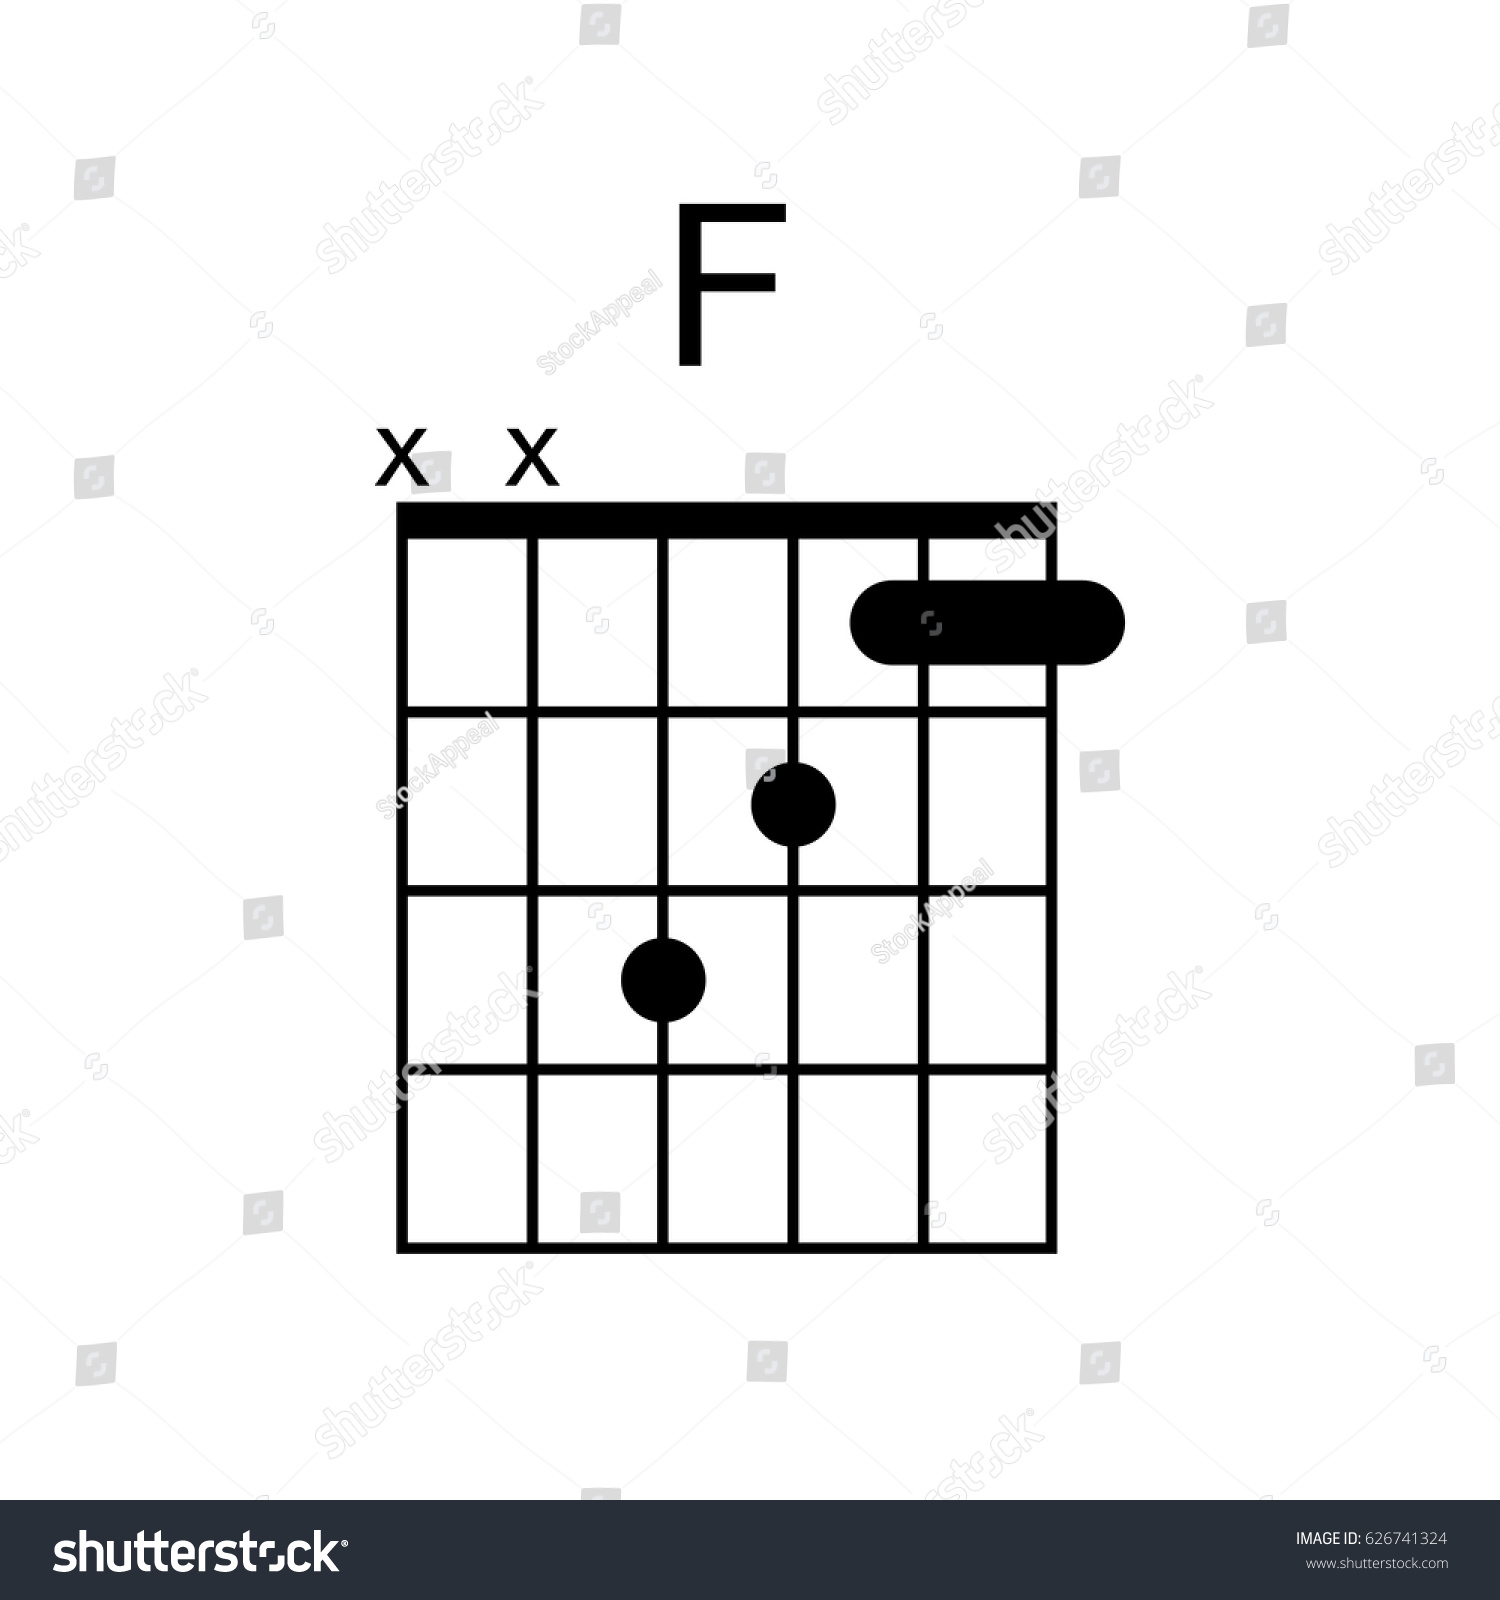 hight resolution of vector guitar chord f chord diagram tab tabulation tablature finger chart